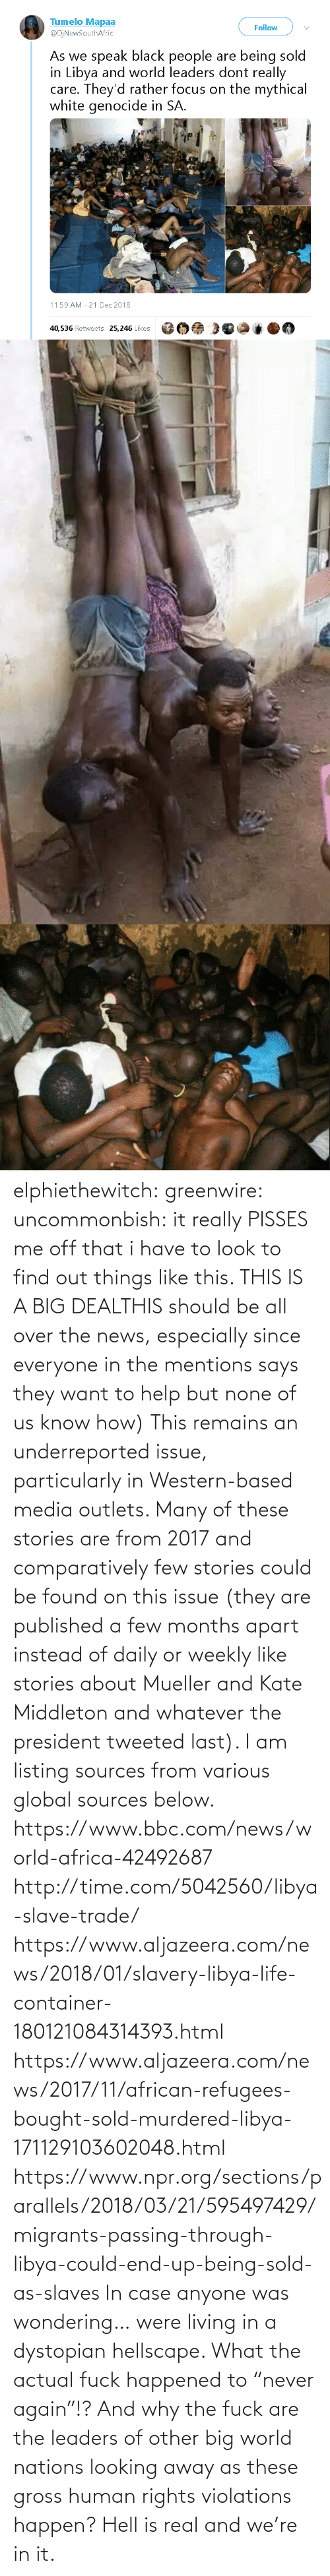 "Africa: elphiethewitch: greenwire:  uncommonbish:  it really PISSES me off that i have to look to find out things like this. THIS IS A BIG DEALTHIS should be all over the news, especially since everyone in the mentions says they want to help but none of us know how)  This remains an underreported issue, particularly in Western-based media outlets. Many of these stories are from 2017 and comparatively few stories could be found on this issue (they are published a few months apart instead of daily or weekly like stories about Mueller and Kate Middleton and whatever the president tweeted last). I am listing sources from various global sources below.  https://www.bbc.com/news/world-africa-42492687 http://time.com/5042560/libya-slave-trade/ https://www.aljazeera.com/news/2018/01/slavery-libya-life-container-180121084314393.html https://www.aljazeera.com/news/2017/11/african-refugees-bought-sold-murdered-libya-171129103602048.html https://www.npr.org/sections/parallels/2018/03/21/595497429/migrants-passing-through-libya-could-end-up-being-sold-as-slaves   In case anyone was wondering… were living in a dystopian hellscape.  What the actual fuck happened to ""never again""!? And why the fuck are the leaders of other big world nations looking away as these gross human rights violations happen?  Hell is real and we're in it."